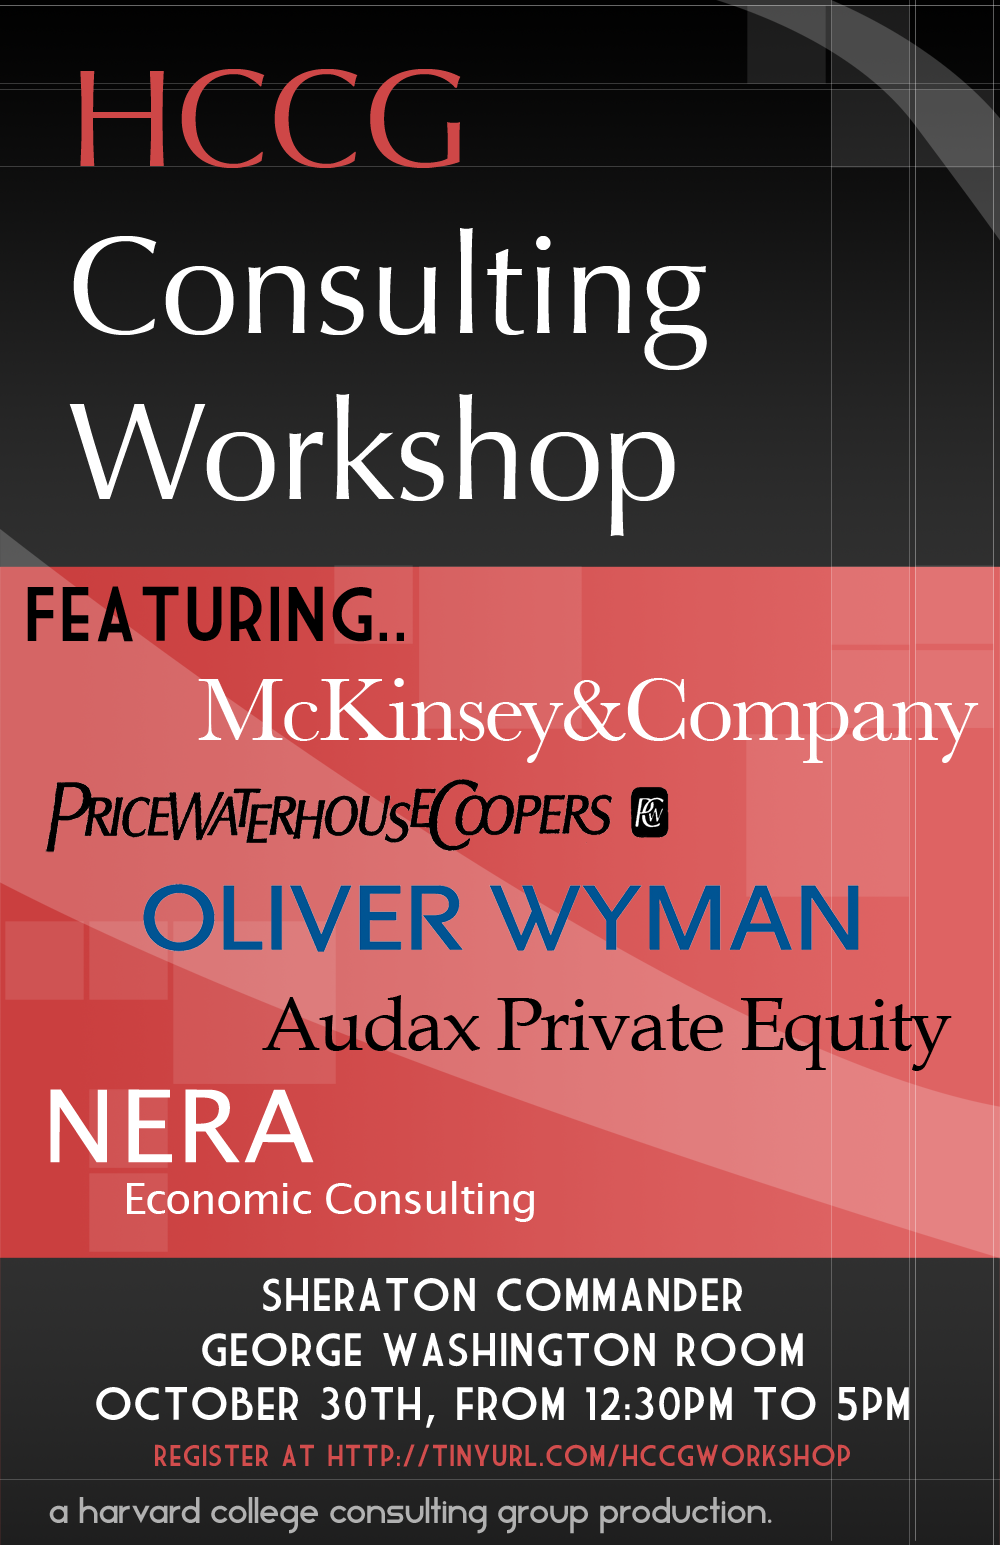 HCCG Consulting Workshop